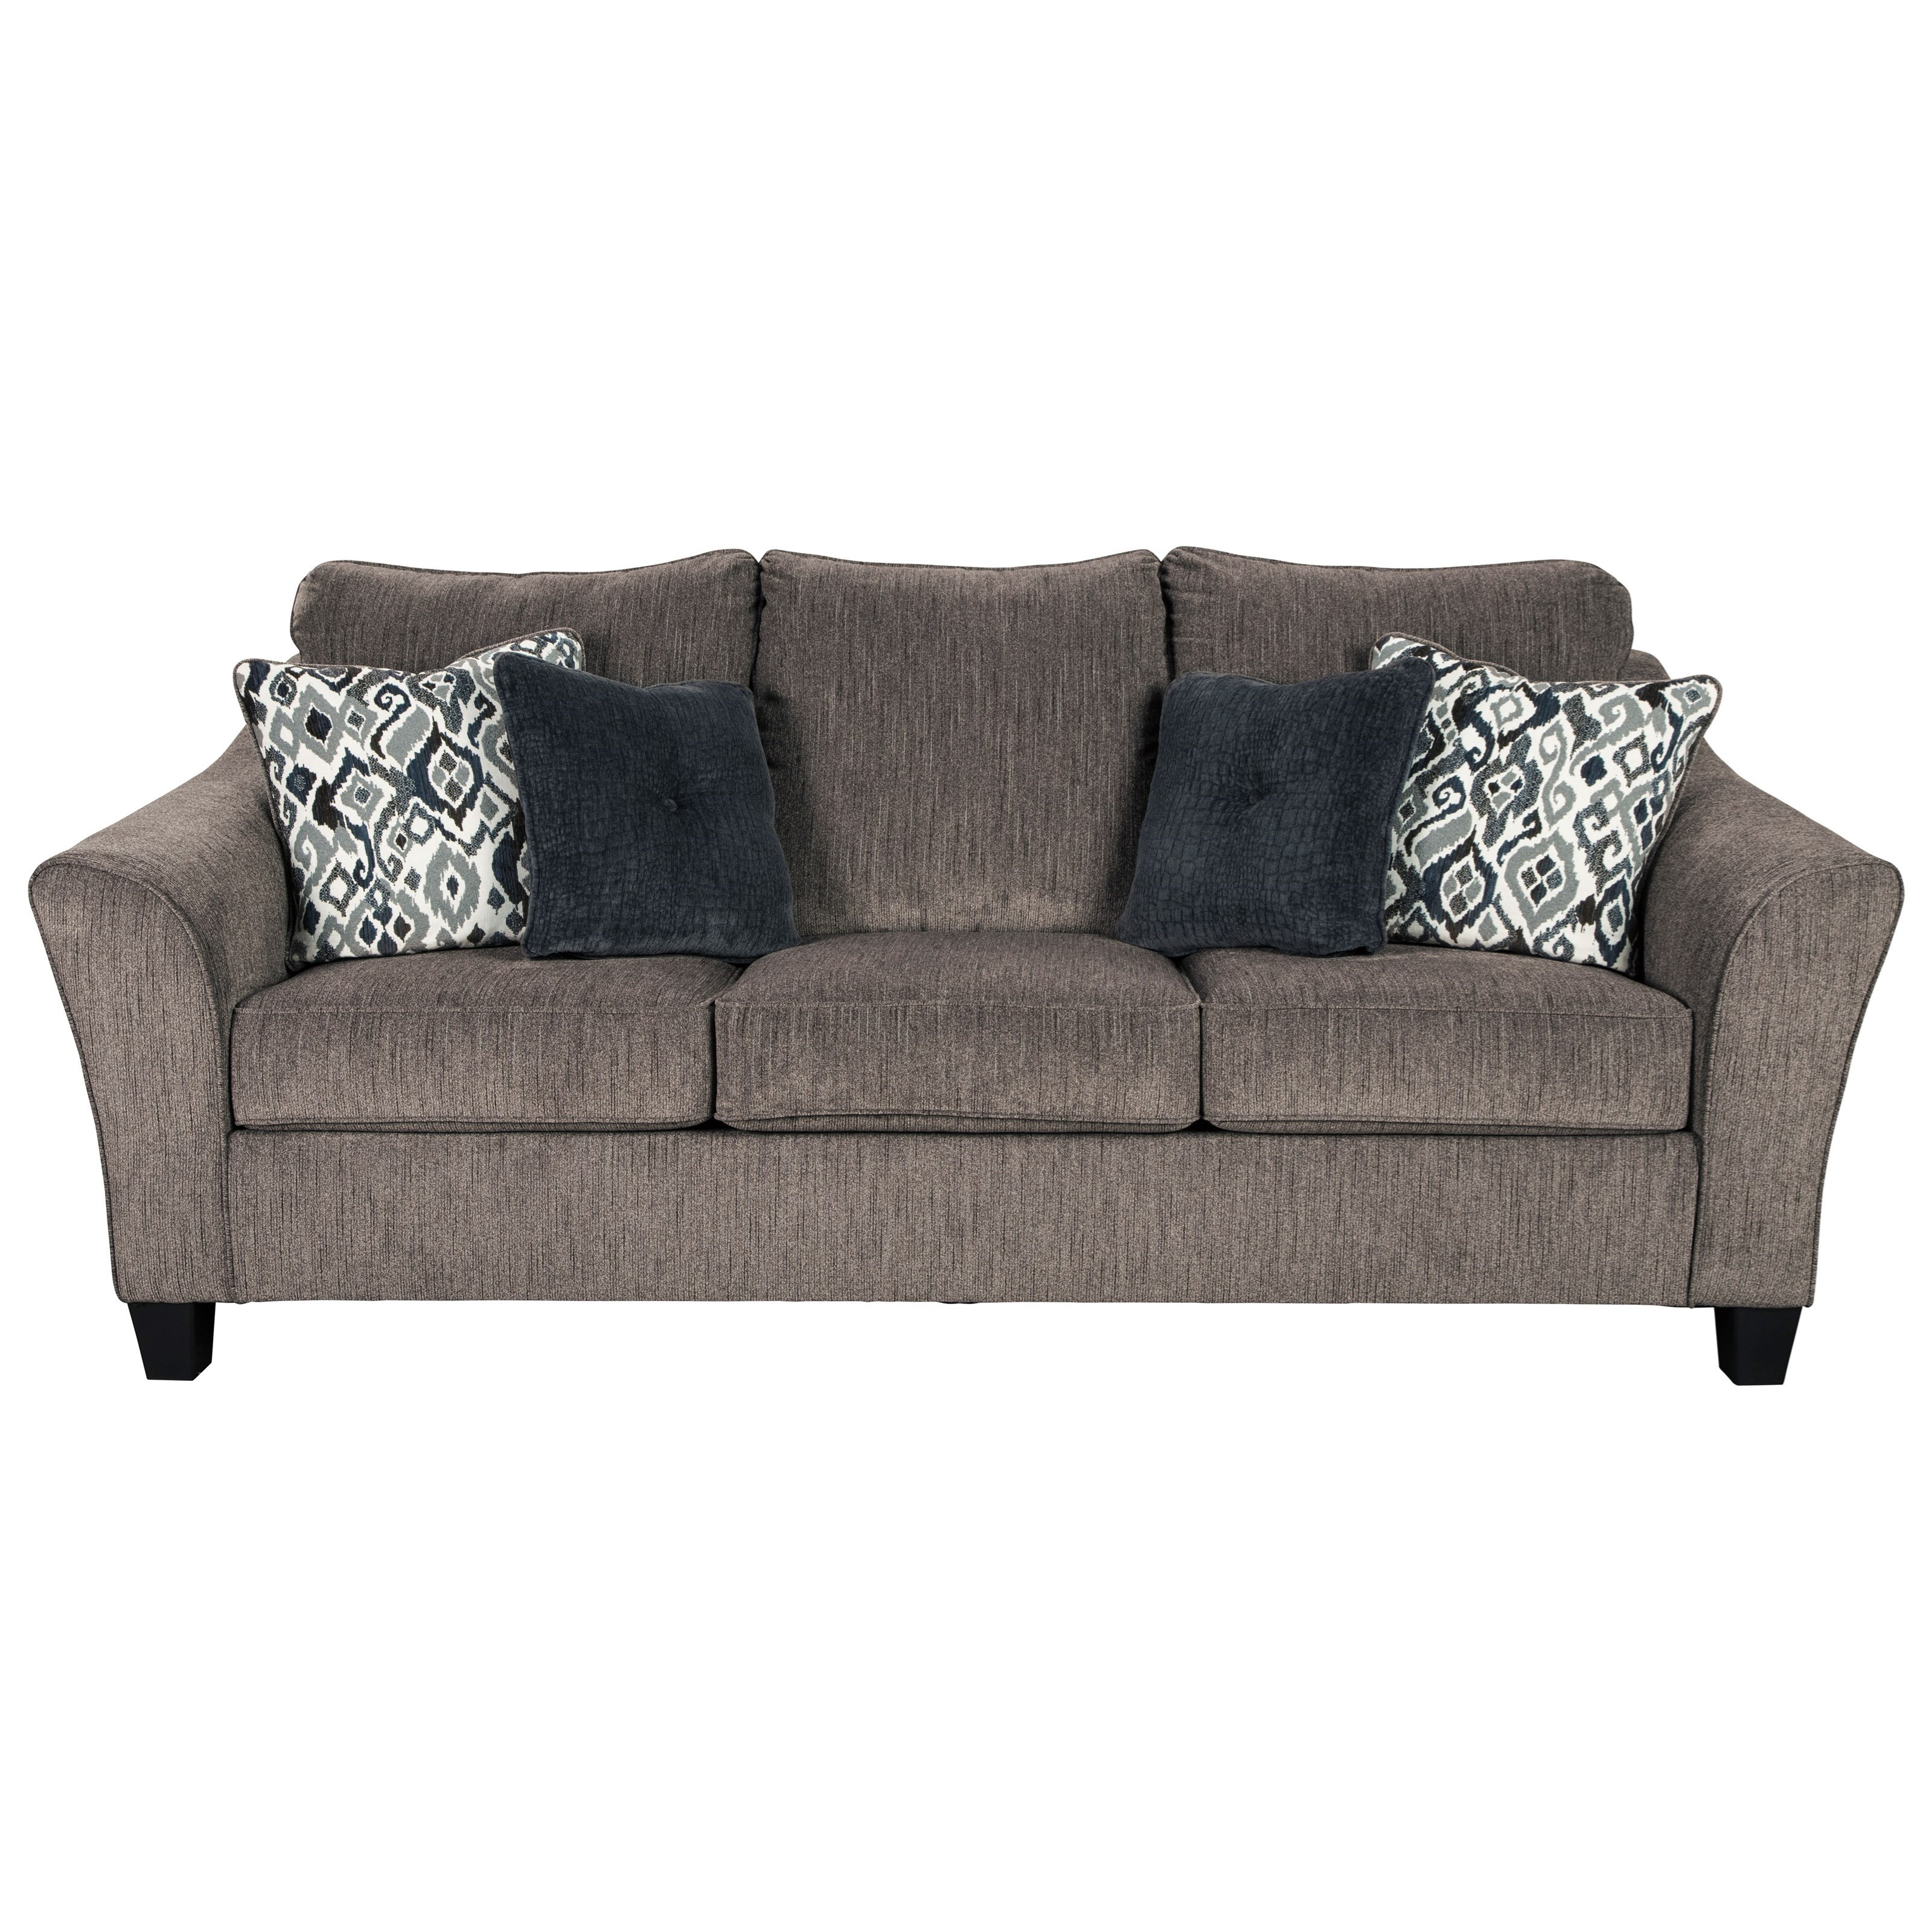 Nemoli Queen Sofa Sleeper by Signature Design by Ashley at Rife's Home Furniture